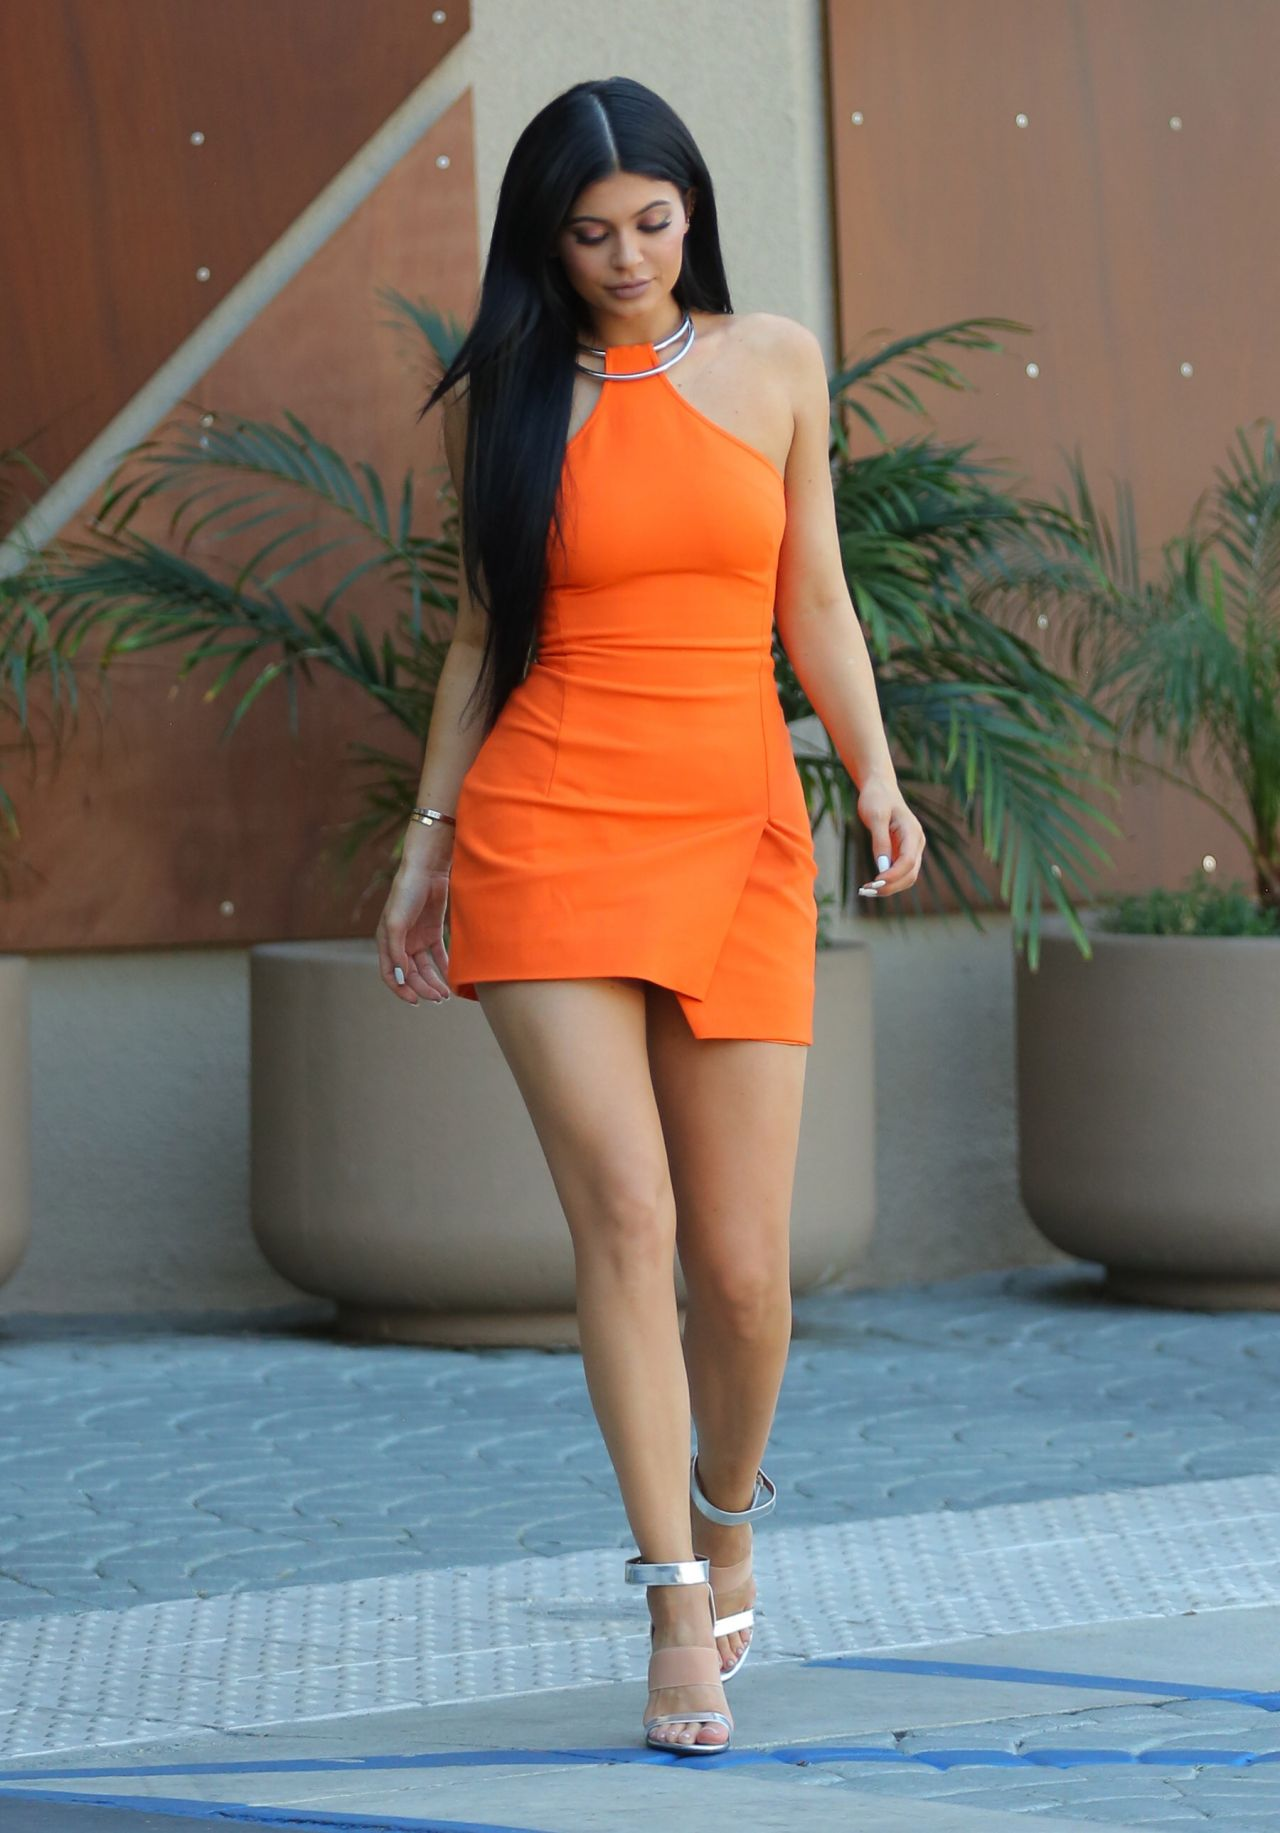 kylie jenner - photo #34